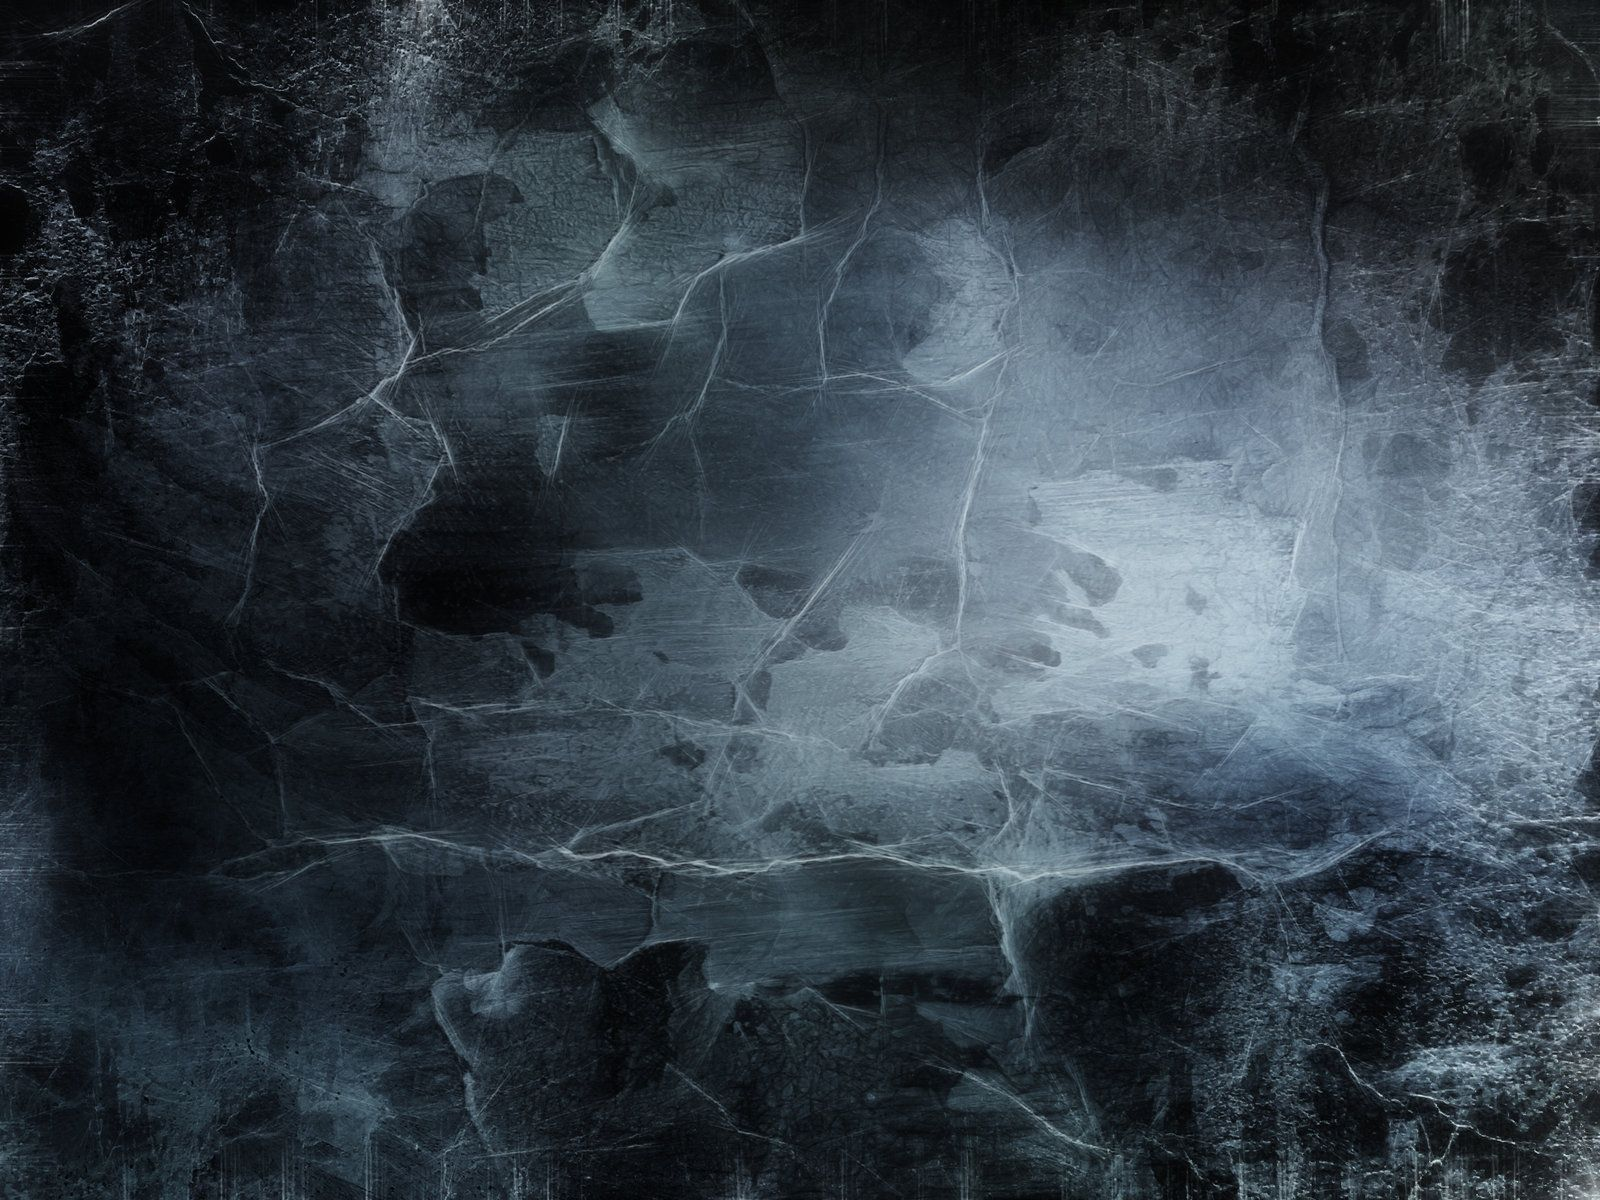 Texture bank 8 shiny blue grungy deviant textures - Black Texture By Ethenyl On Deviantart Hd Wallpapers Pinterest Deviantart